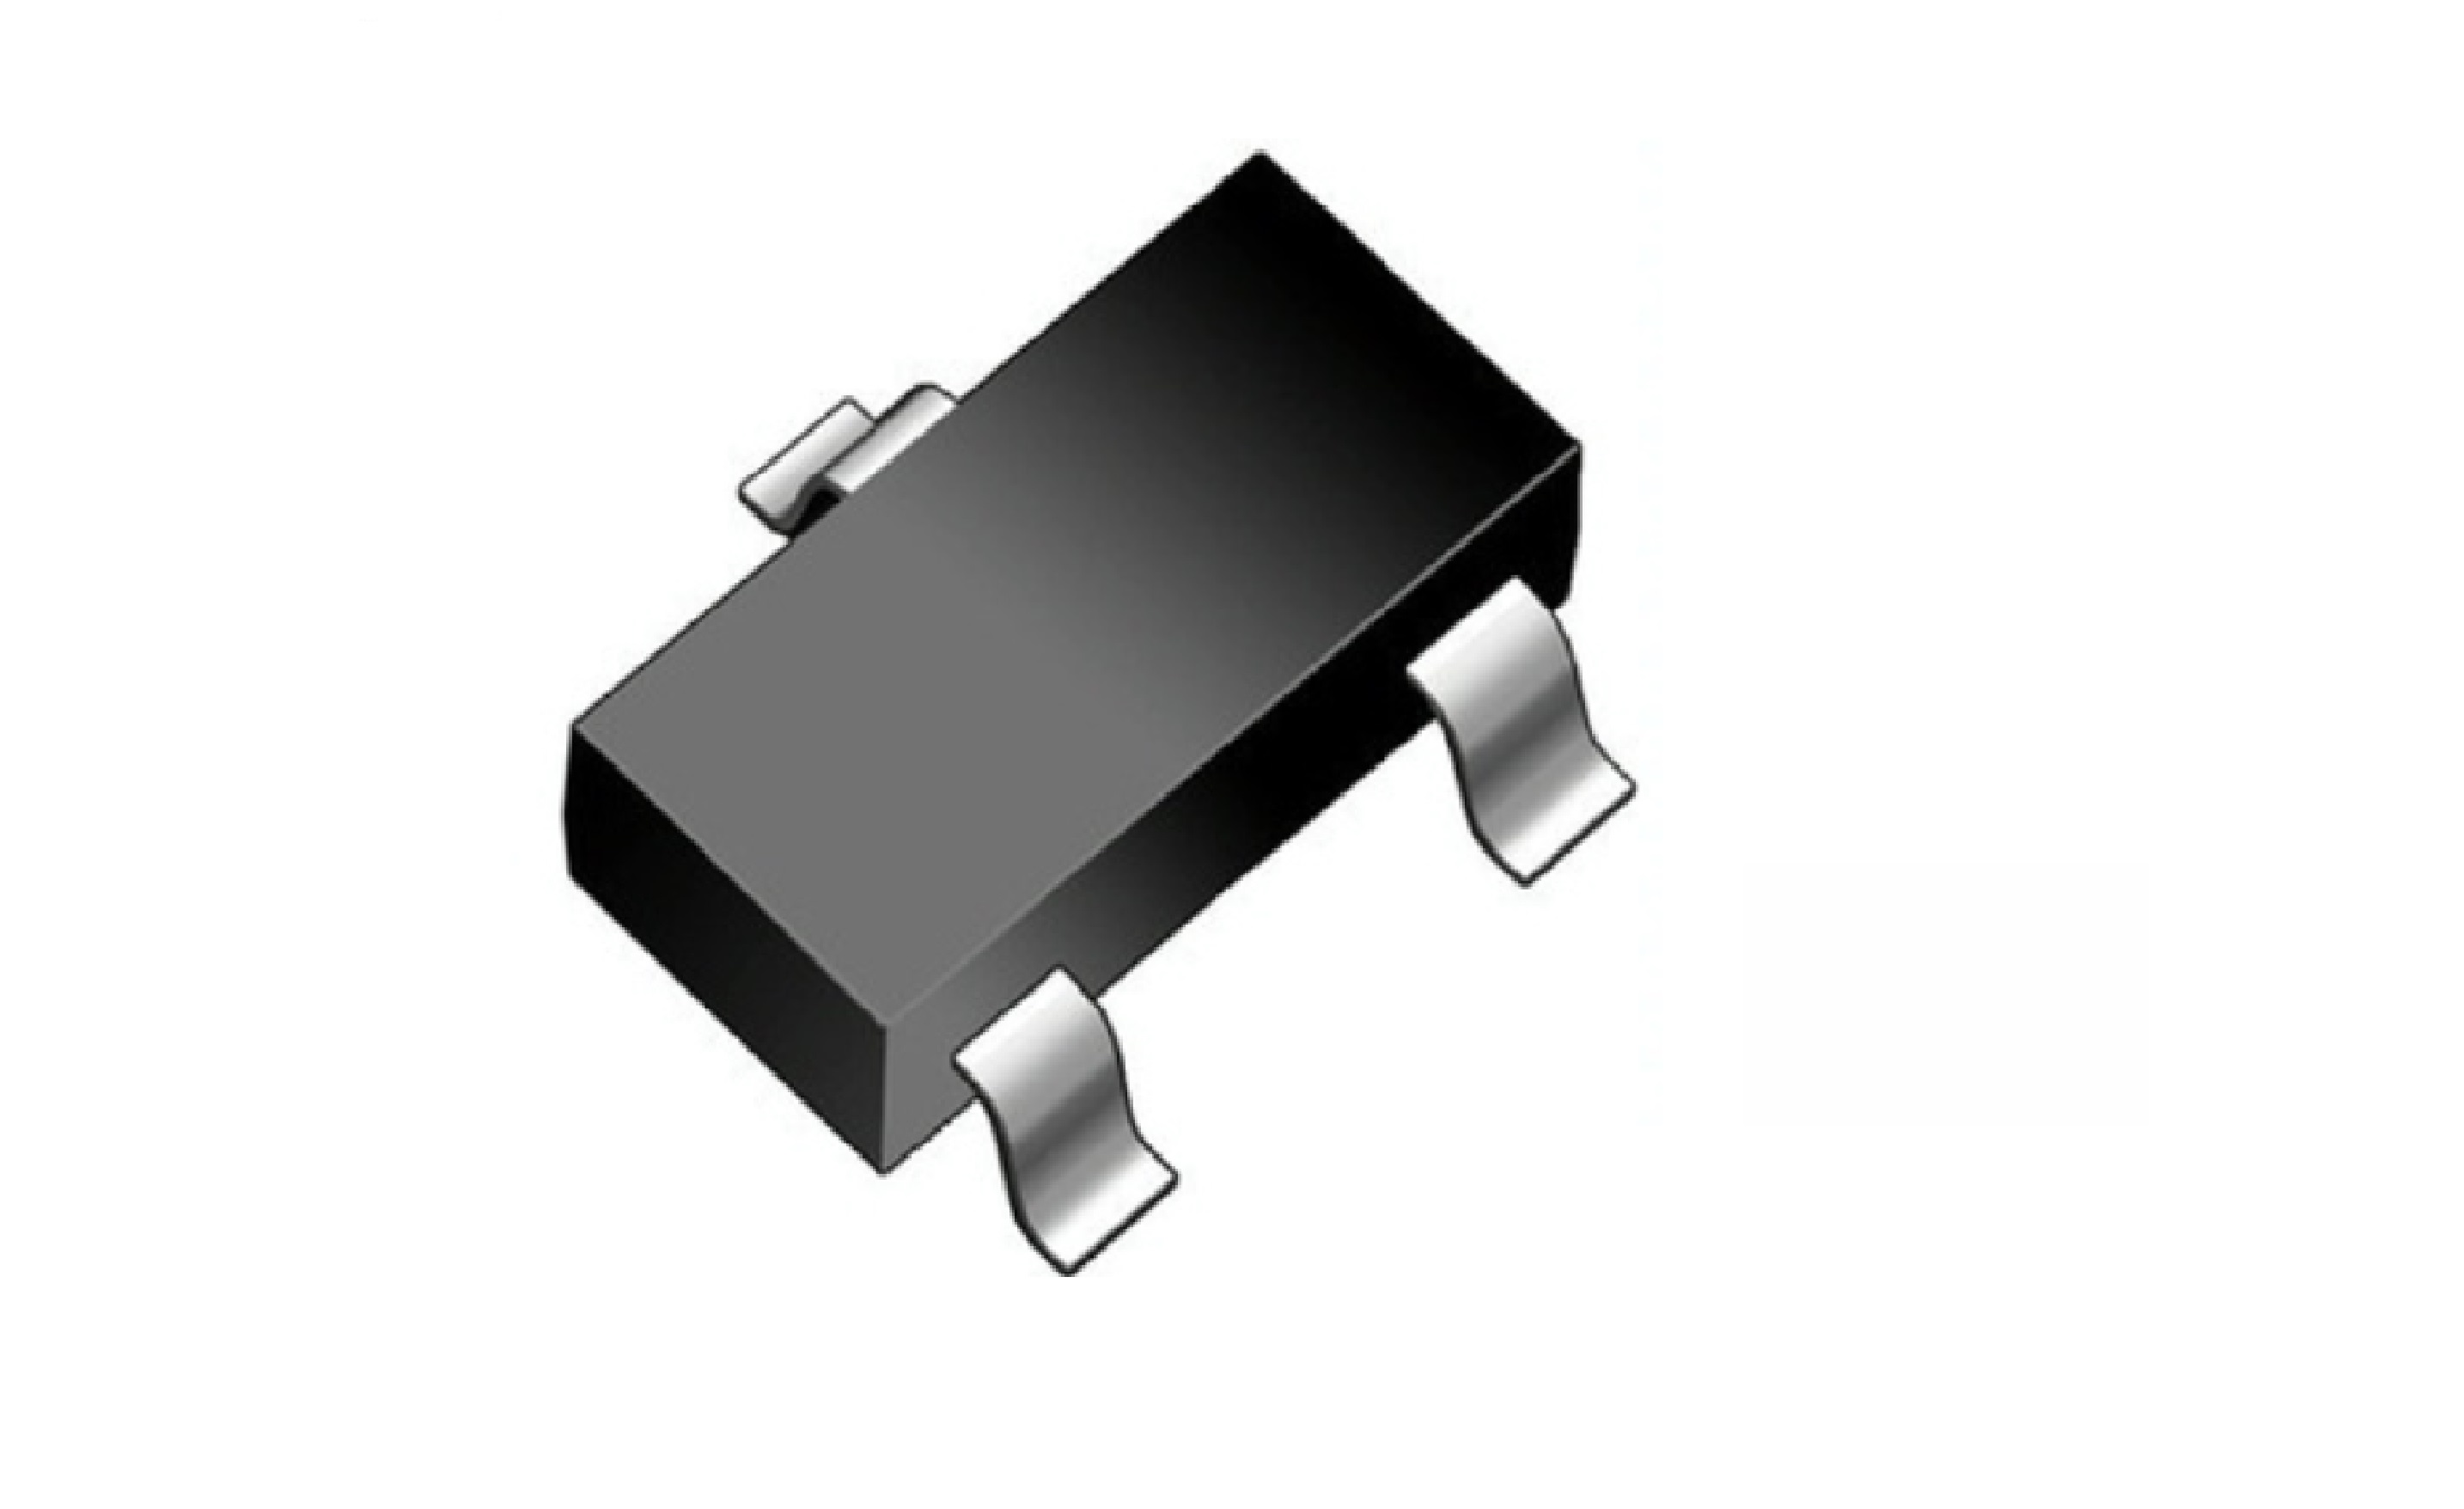 Samsung Semi Taitron Internet Super Store Tiss Npn 8211 Pnp Transistor Tester Circuit Using 3906 Description Epitaxial Silicon Switching Application 40v 600ma Hfe100300 150ma Vcesat 04v 15ma Ft200mhz In Sot 23